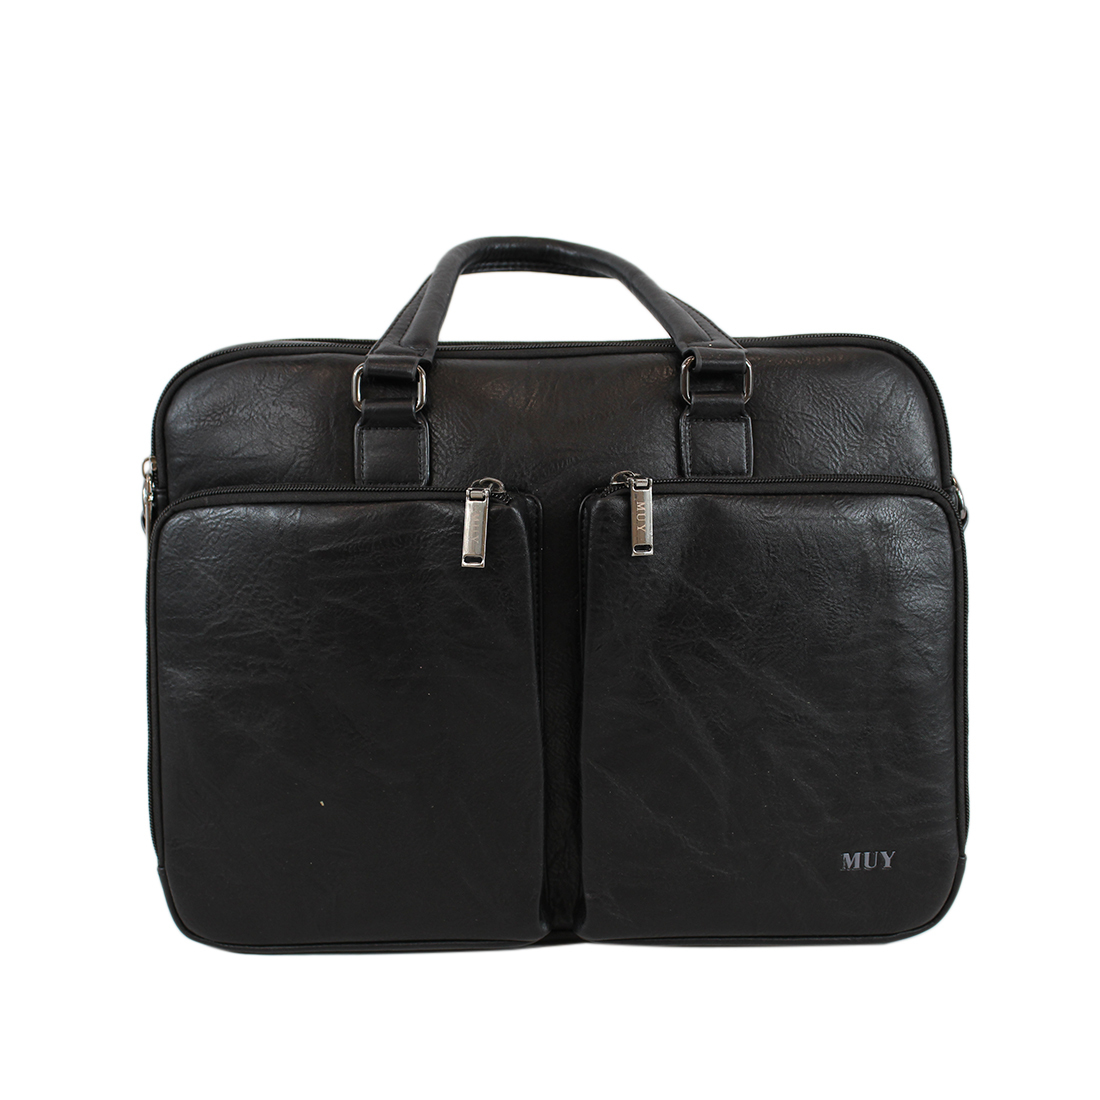 Real leather briefcase with two pockets on front